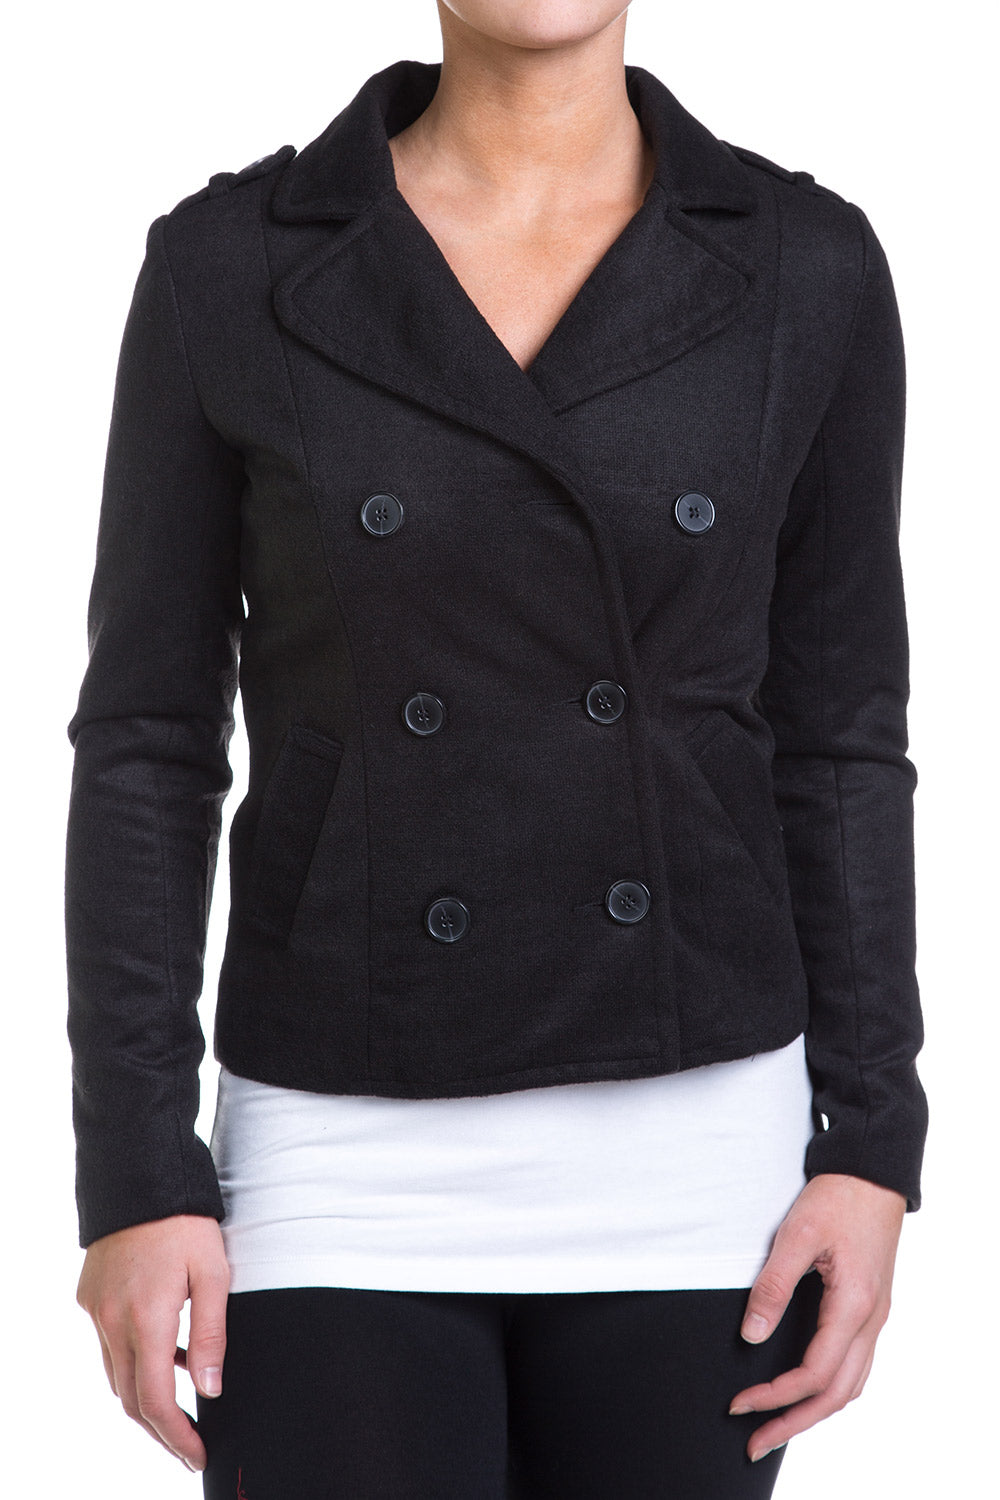 Type 4 Pleasant Peacoat in Black